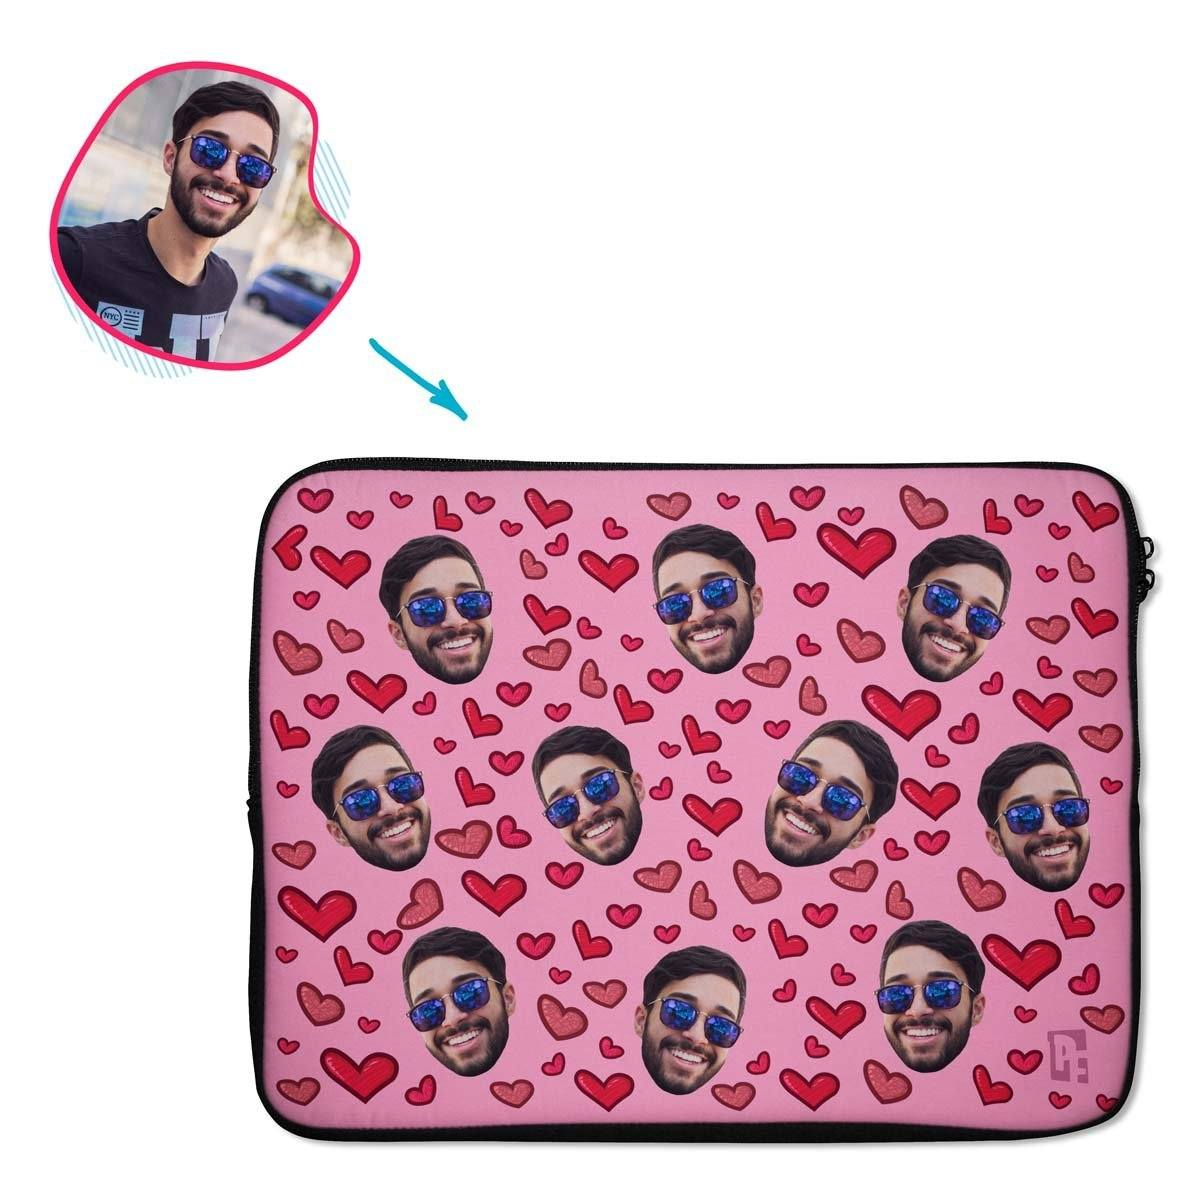 pink Heart laptop sleeve personalized with photo of face printed on them